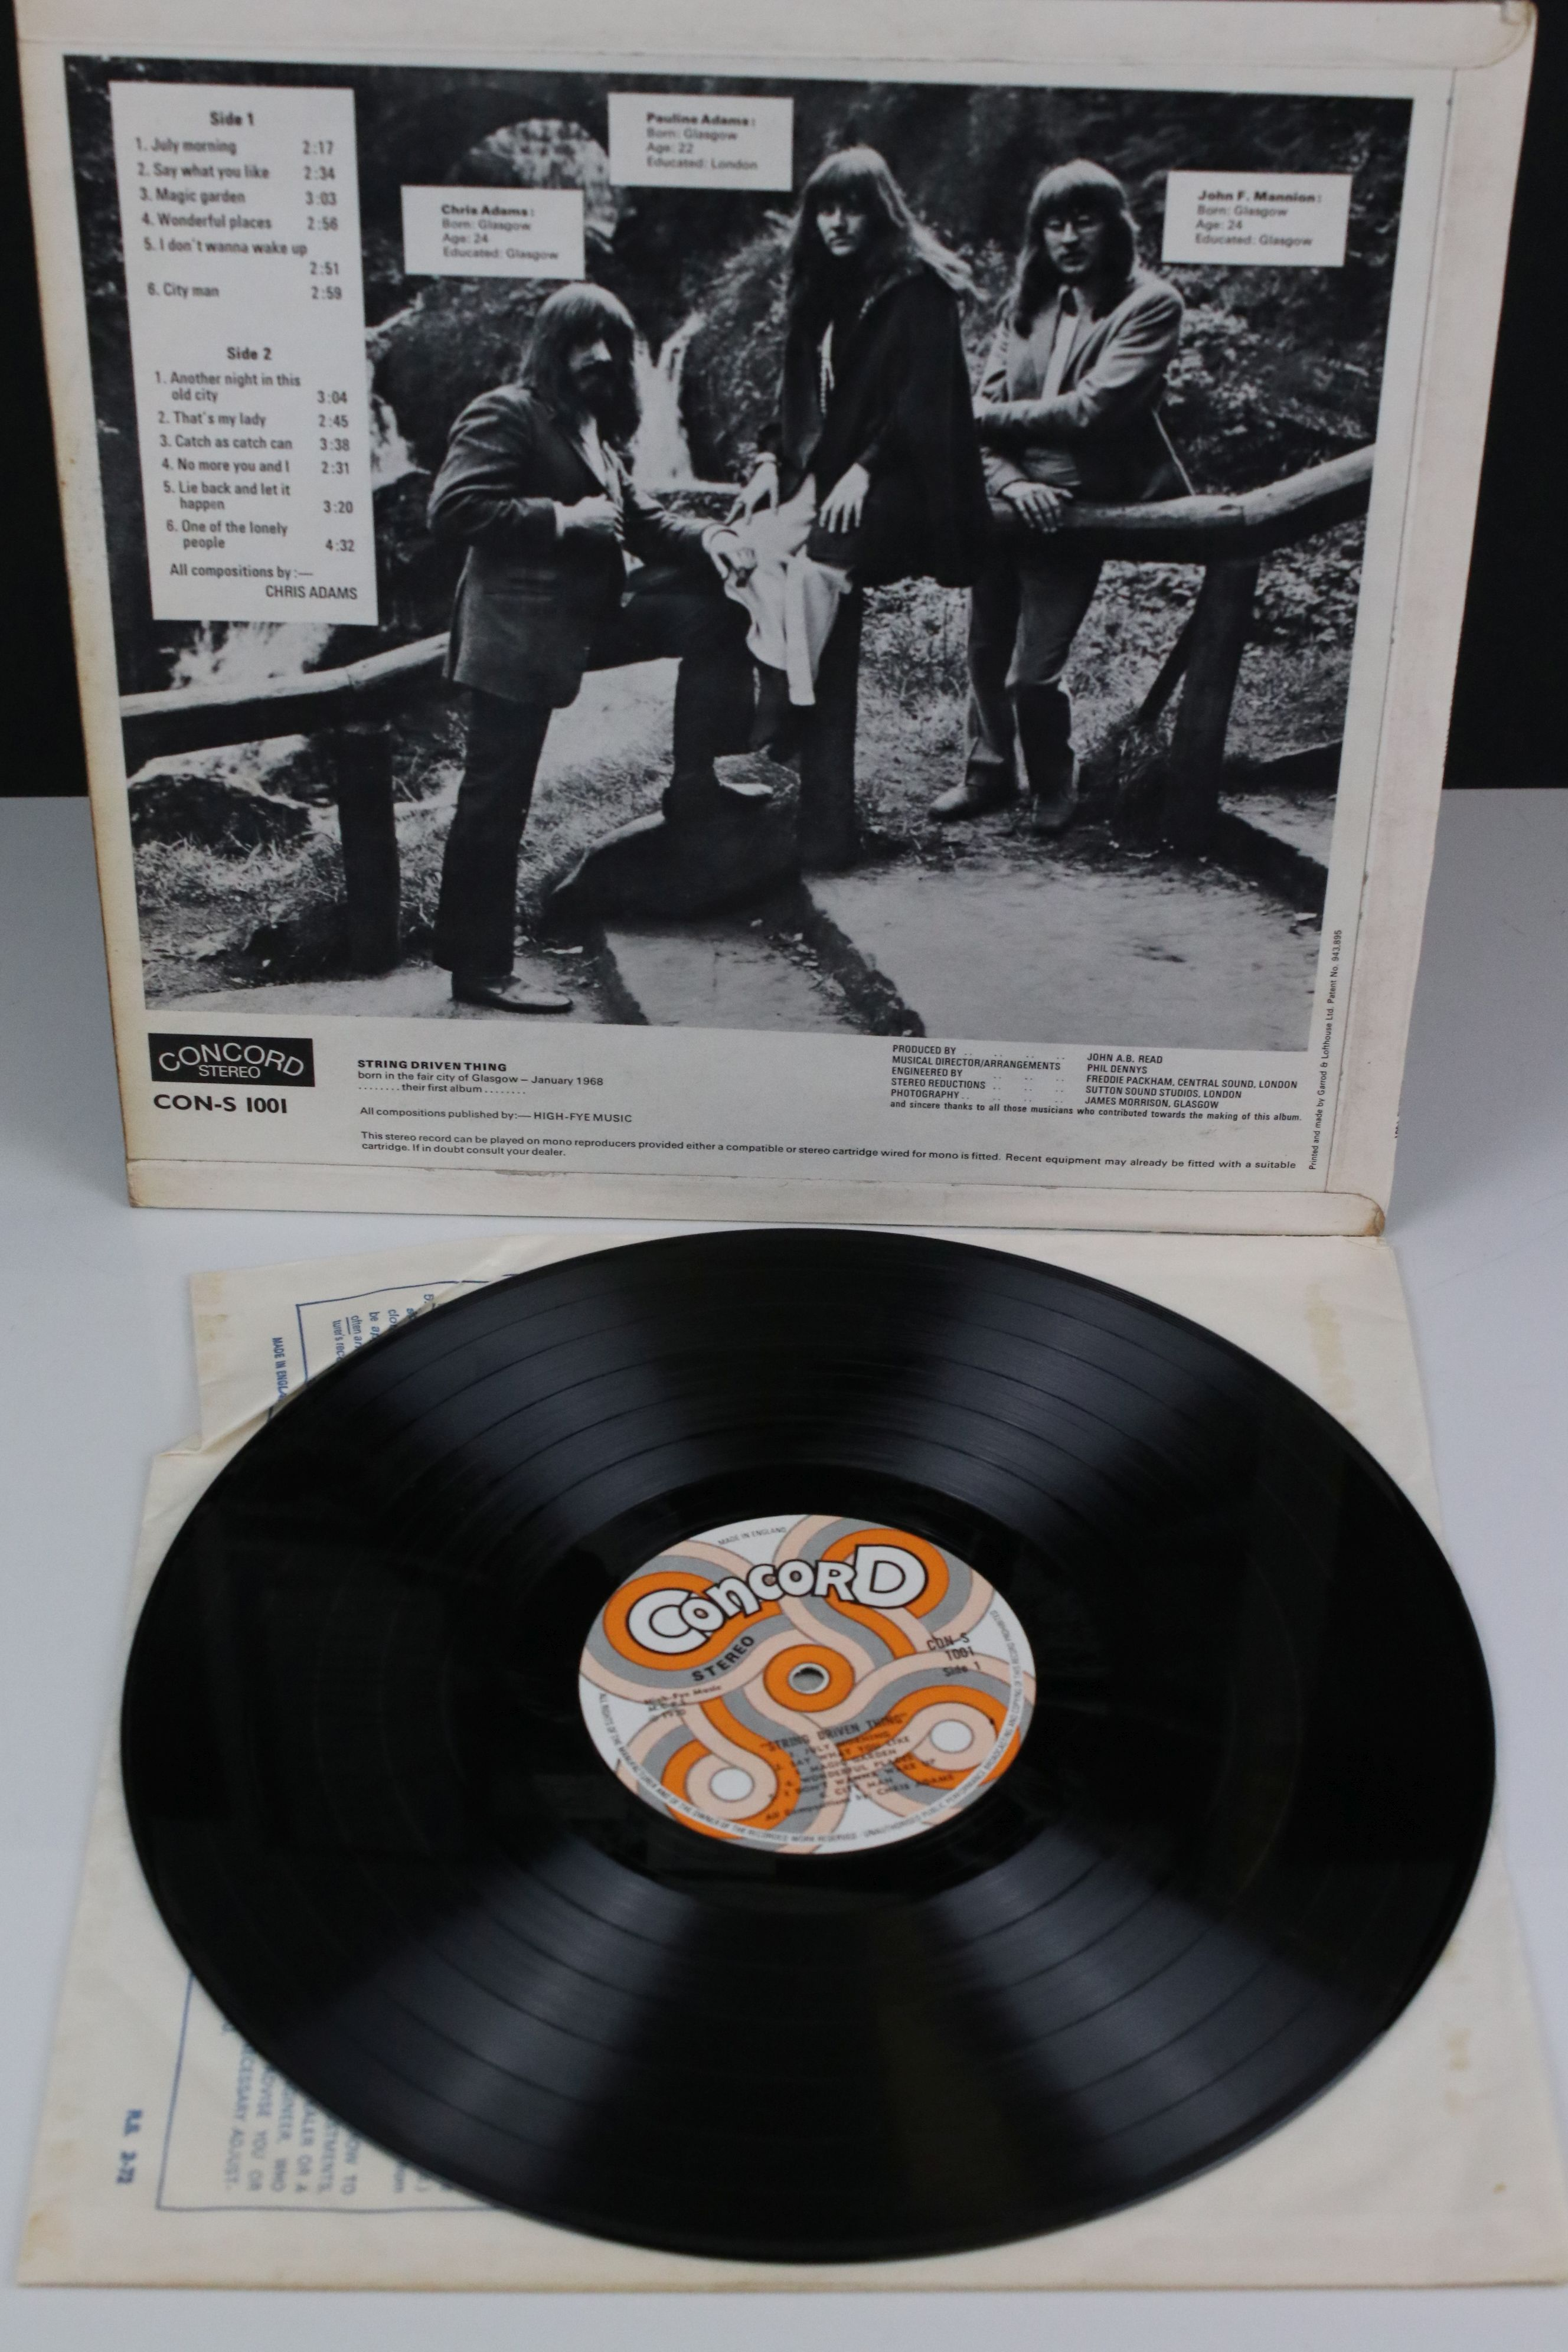 Vinyl - String Driven Thing self titled LP on Concord CON1001 Stereo, first album for the Concorde - Image 2 of 4